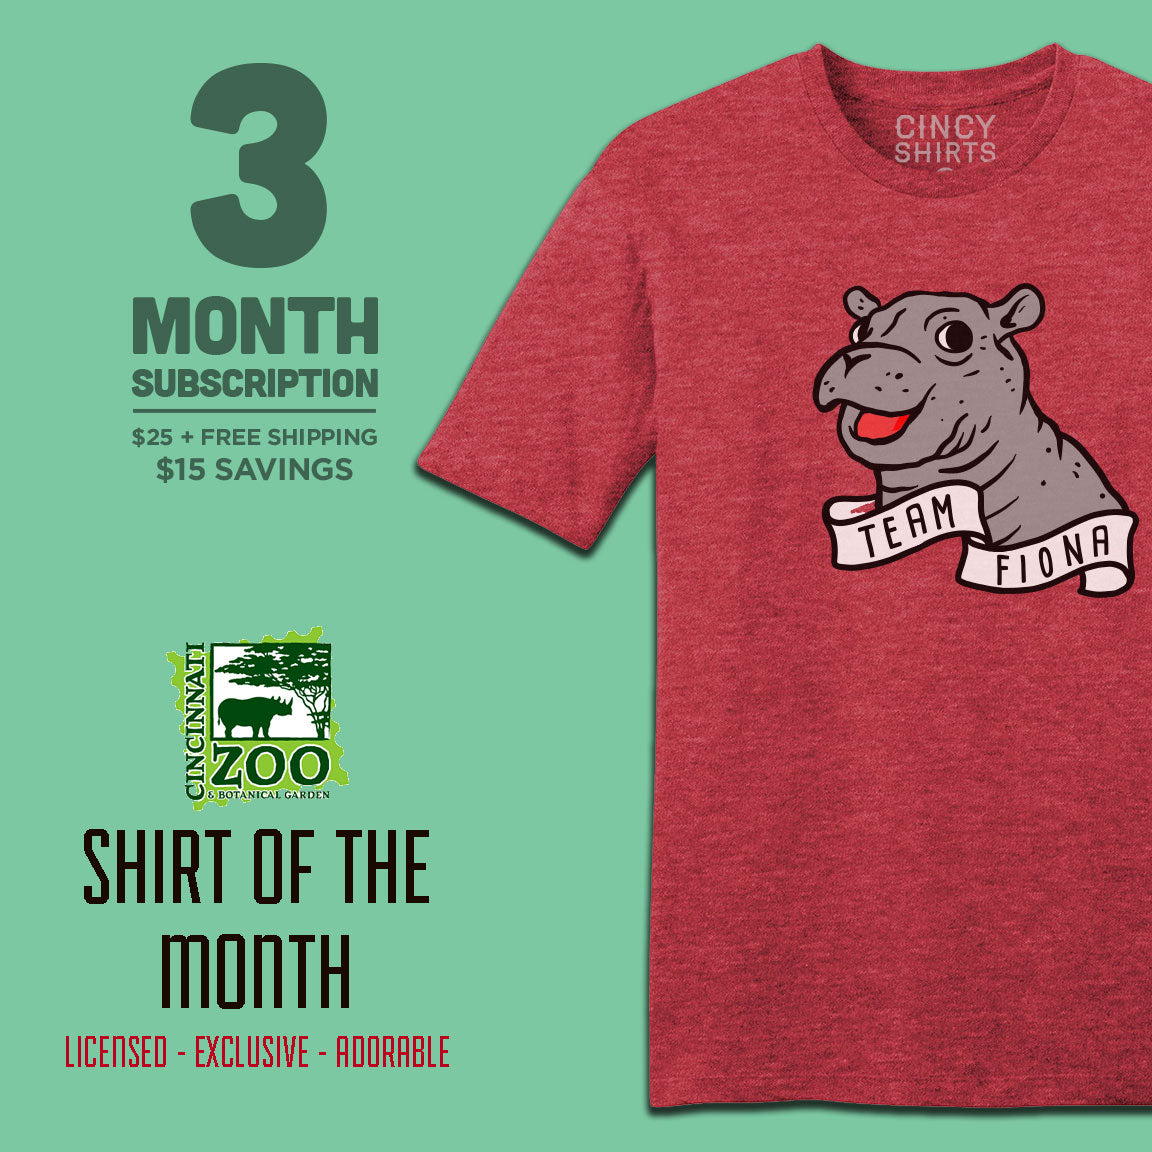 3-Month Cincinnati Zoo Shirt of the Month - Cincy Shirts